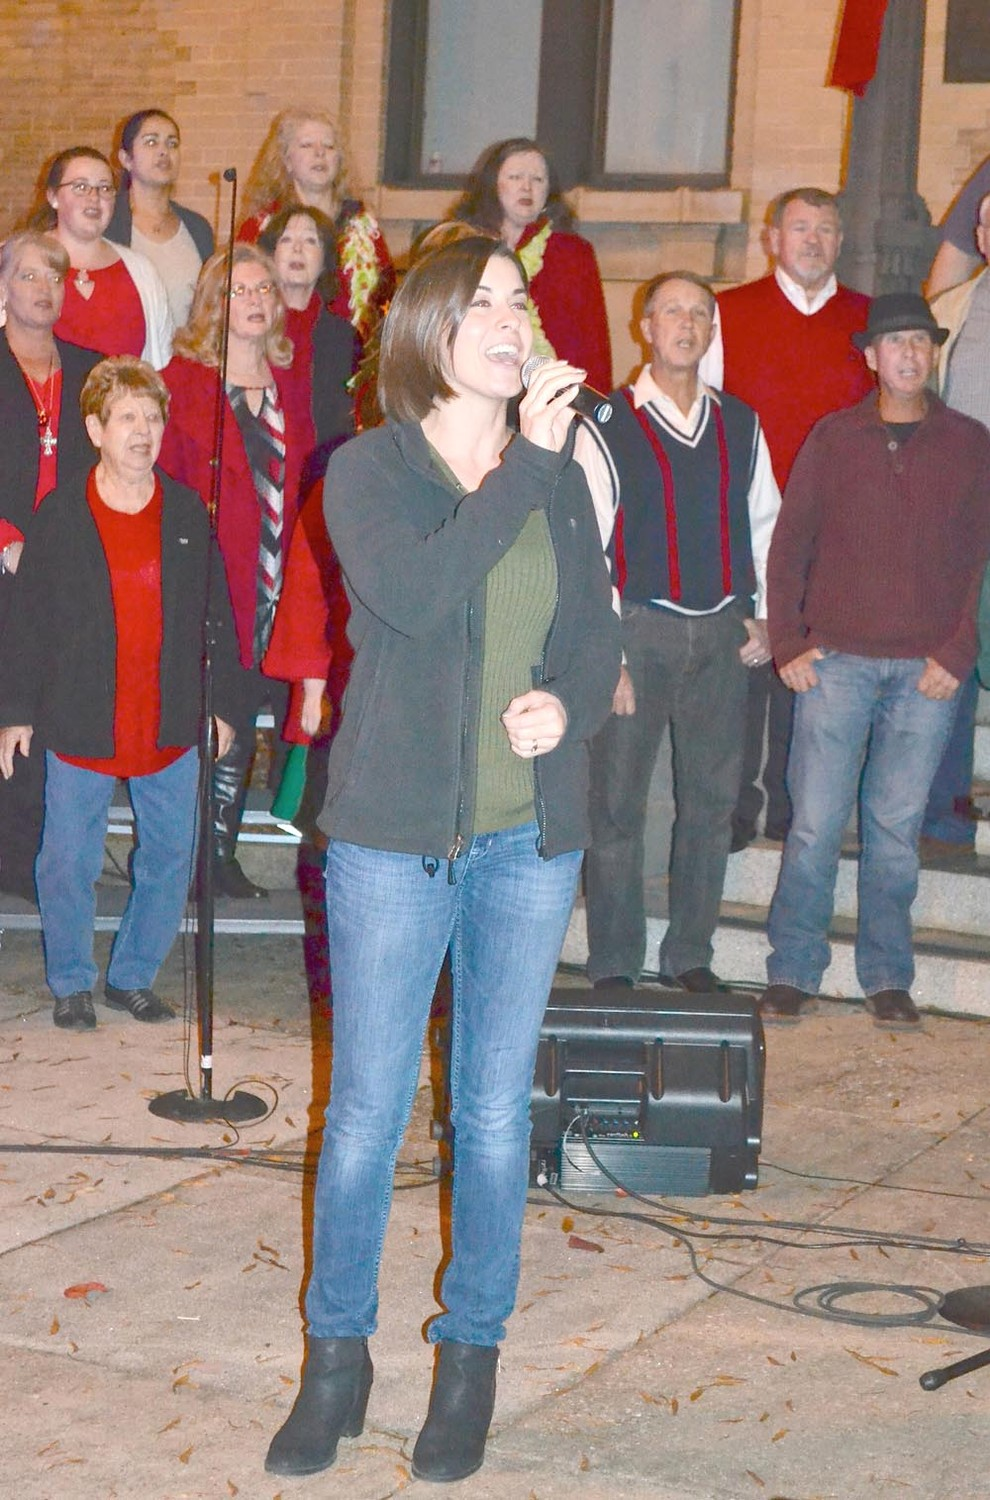 TATUM BRINKMAN sings at Friday's lighting of the Cleveland Christmas tree.